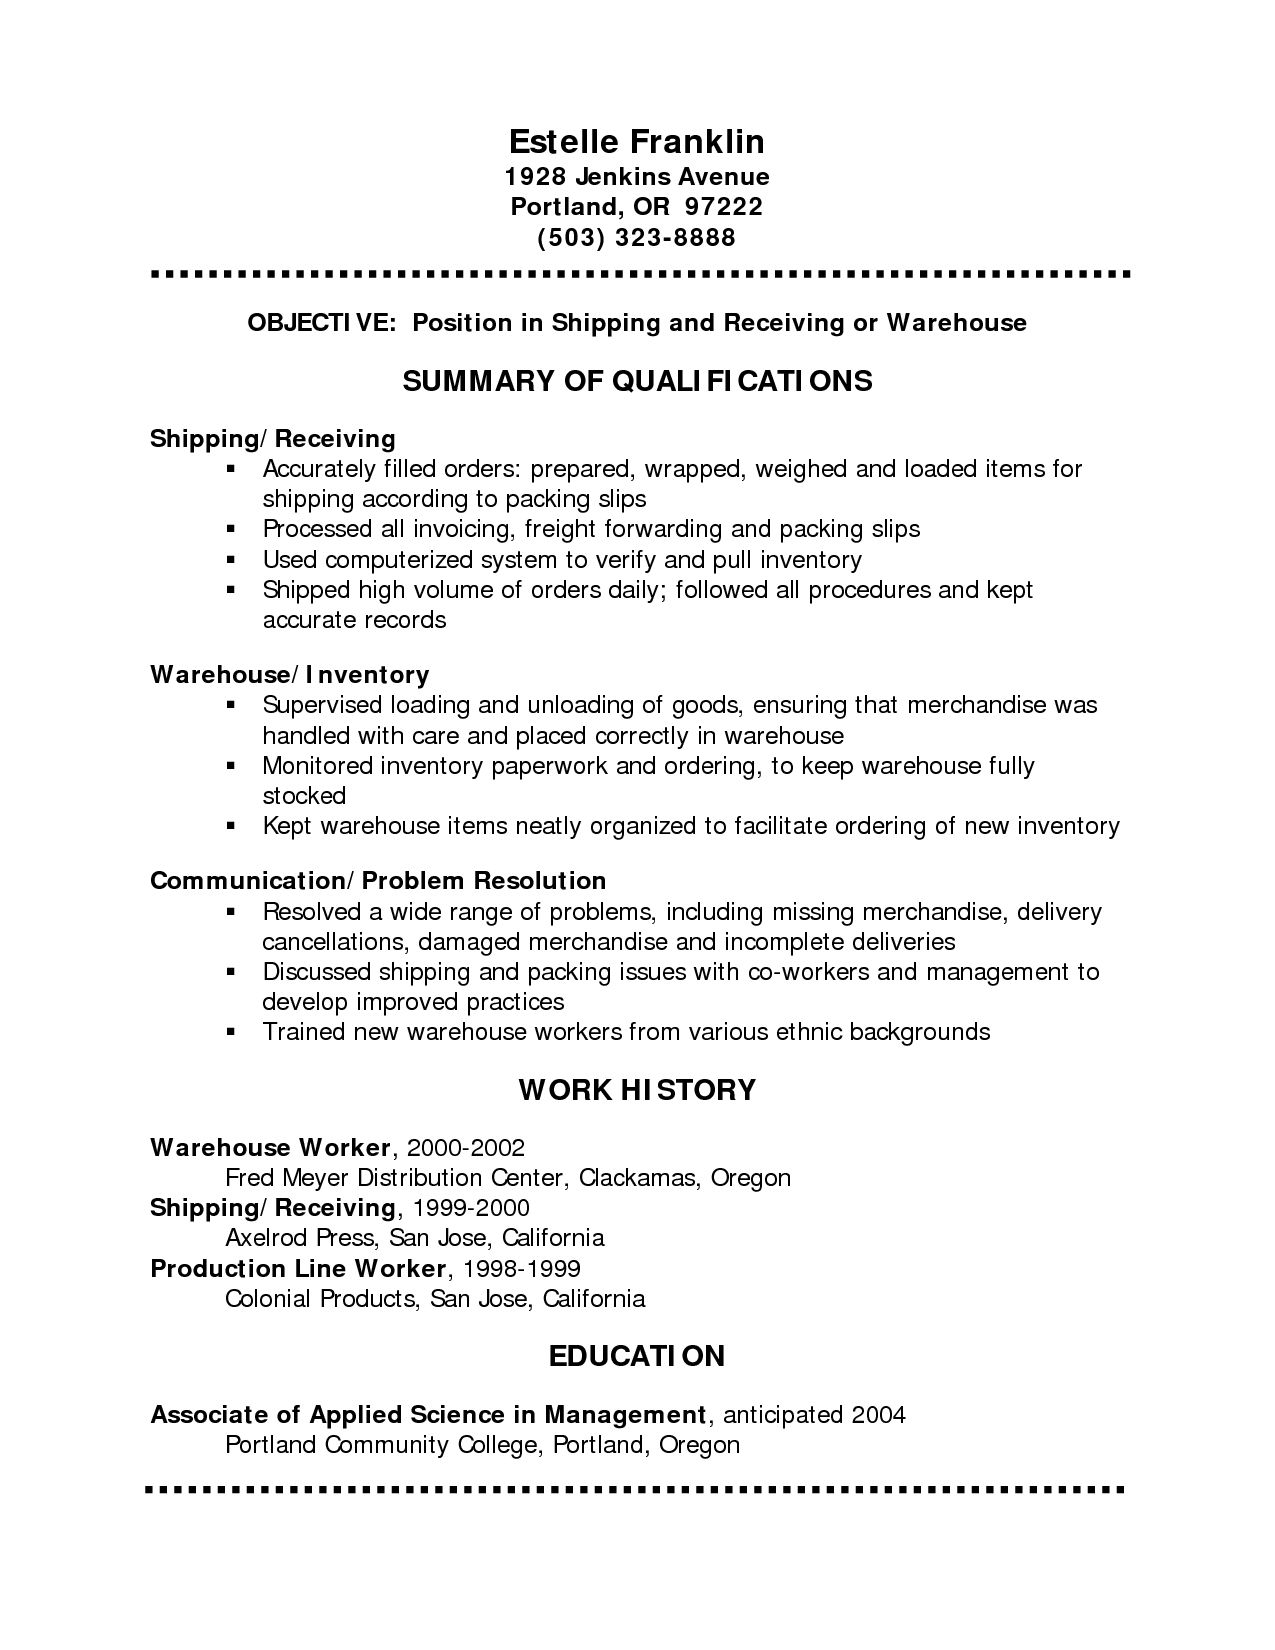 Apa Resume Sample Computer Engineer Cover Letter Costume